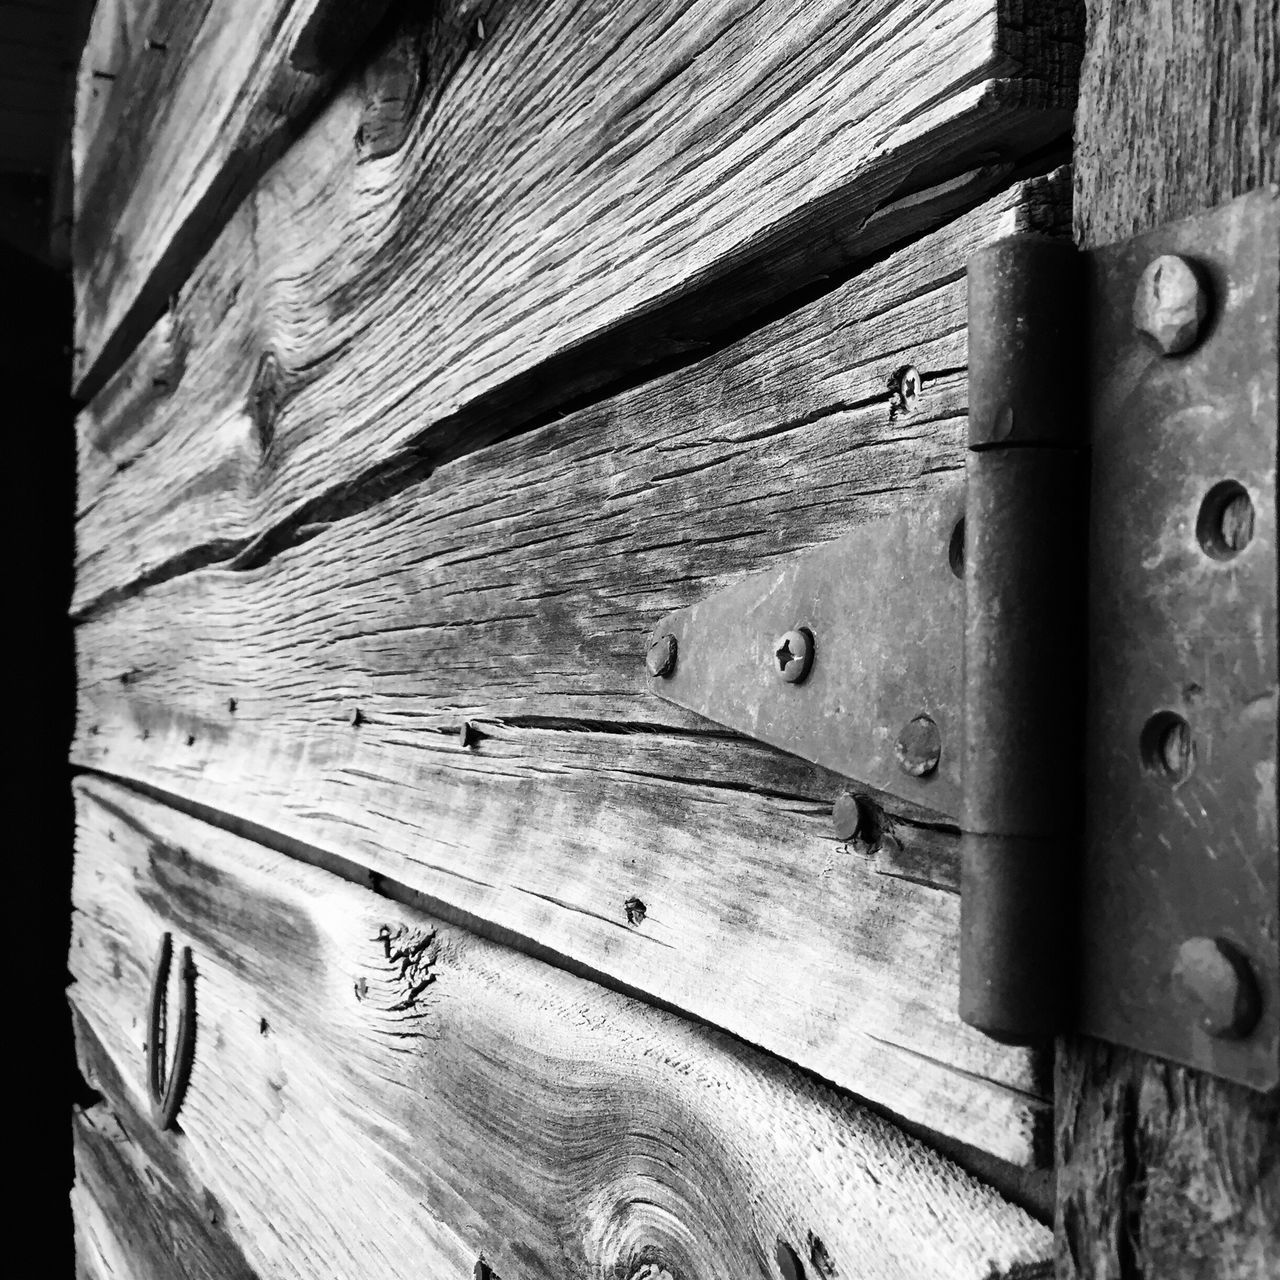 Through the door of the unknown Old Barn Old Barns Barn Door Old Door Old Doors Old Wood Old Wooden Door Woodgrain Good Luck Good Luck Horse Shoe Horse Shoe Perspective Door Hinge Hinge Weathered Composition Country Living Texture And Surfaces Taos New Mexico Black&white Black And White Photography Black And White Door Unknown Black & White